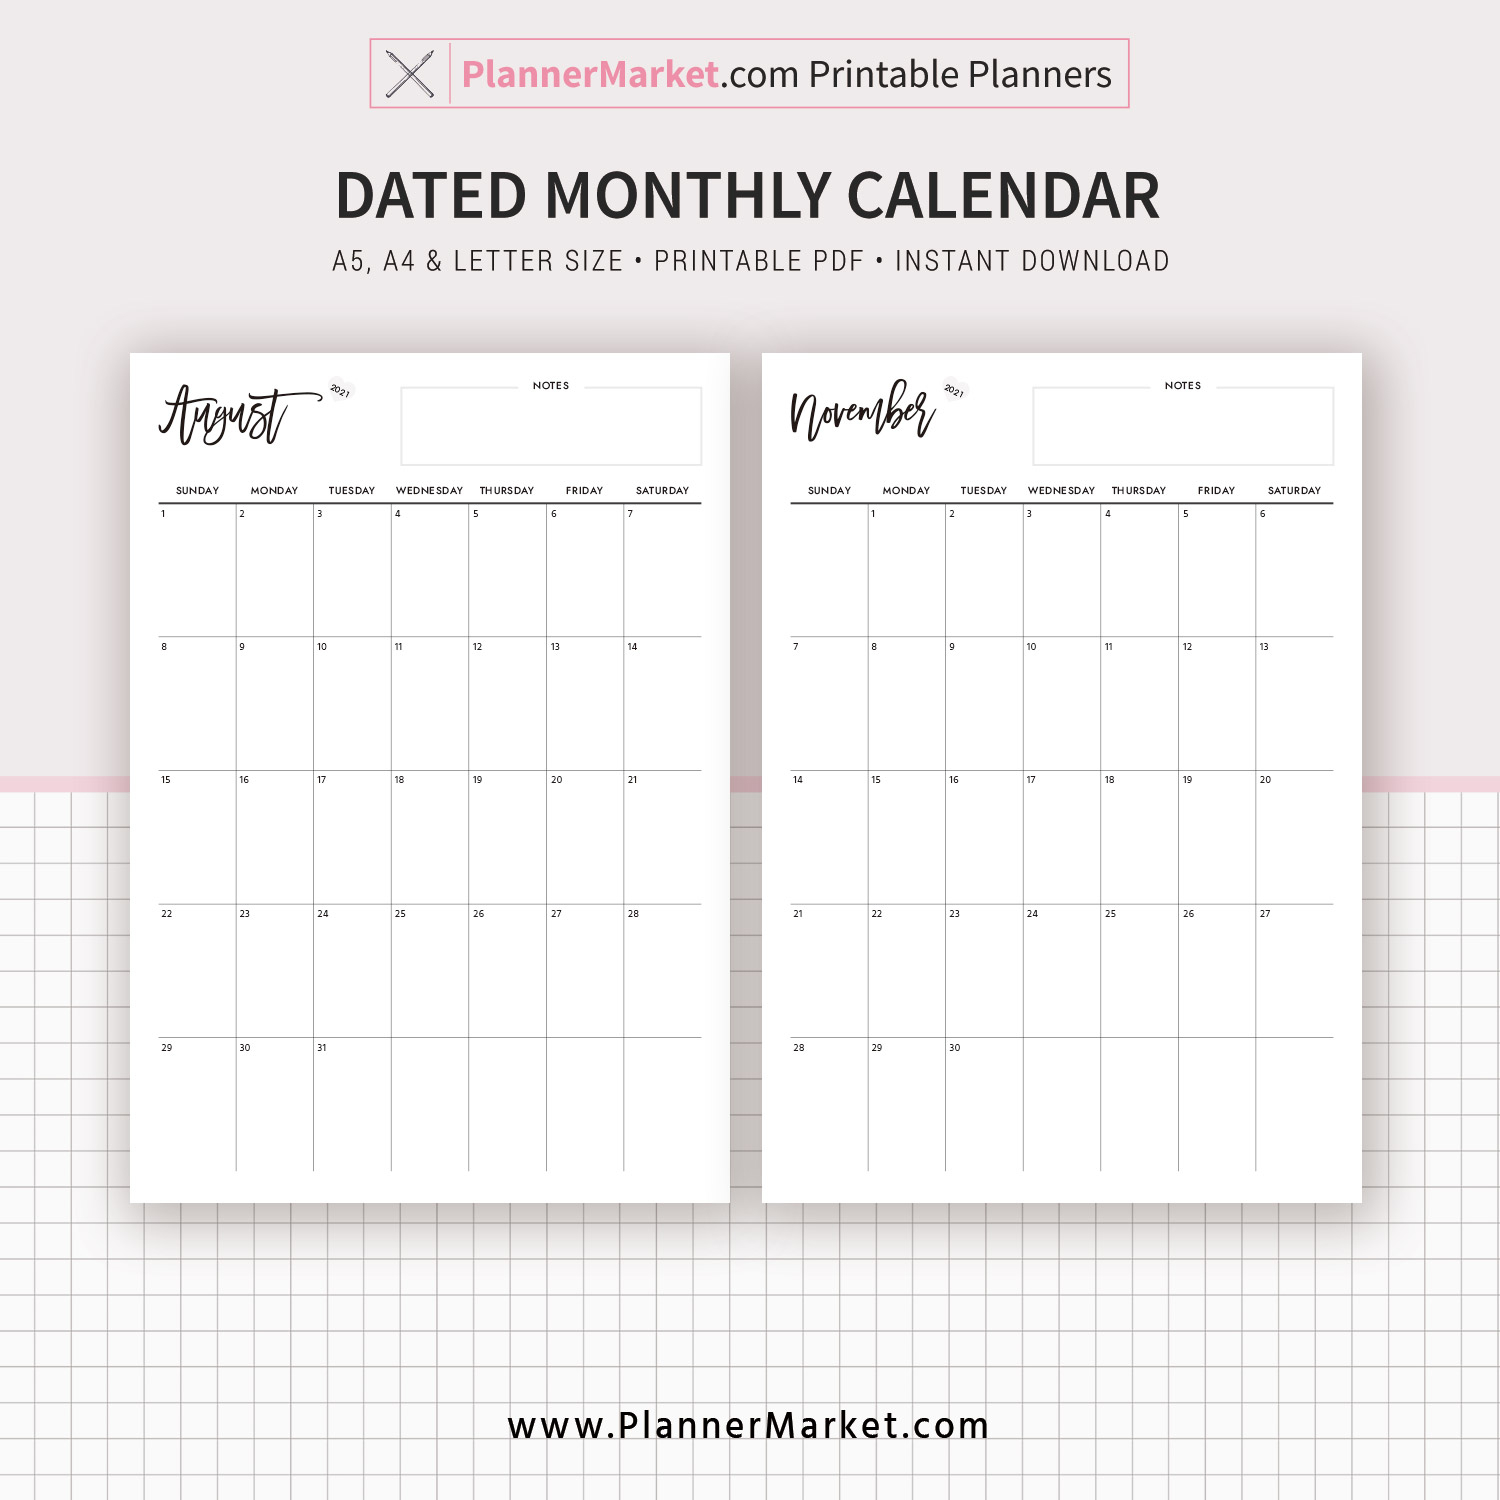 monthly calendar monthly planner printable planner inserts a5 a4 letter size monday and sunday start